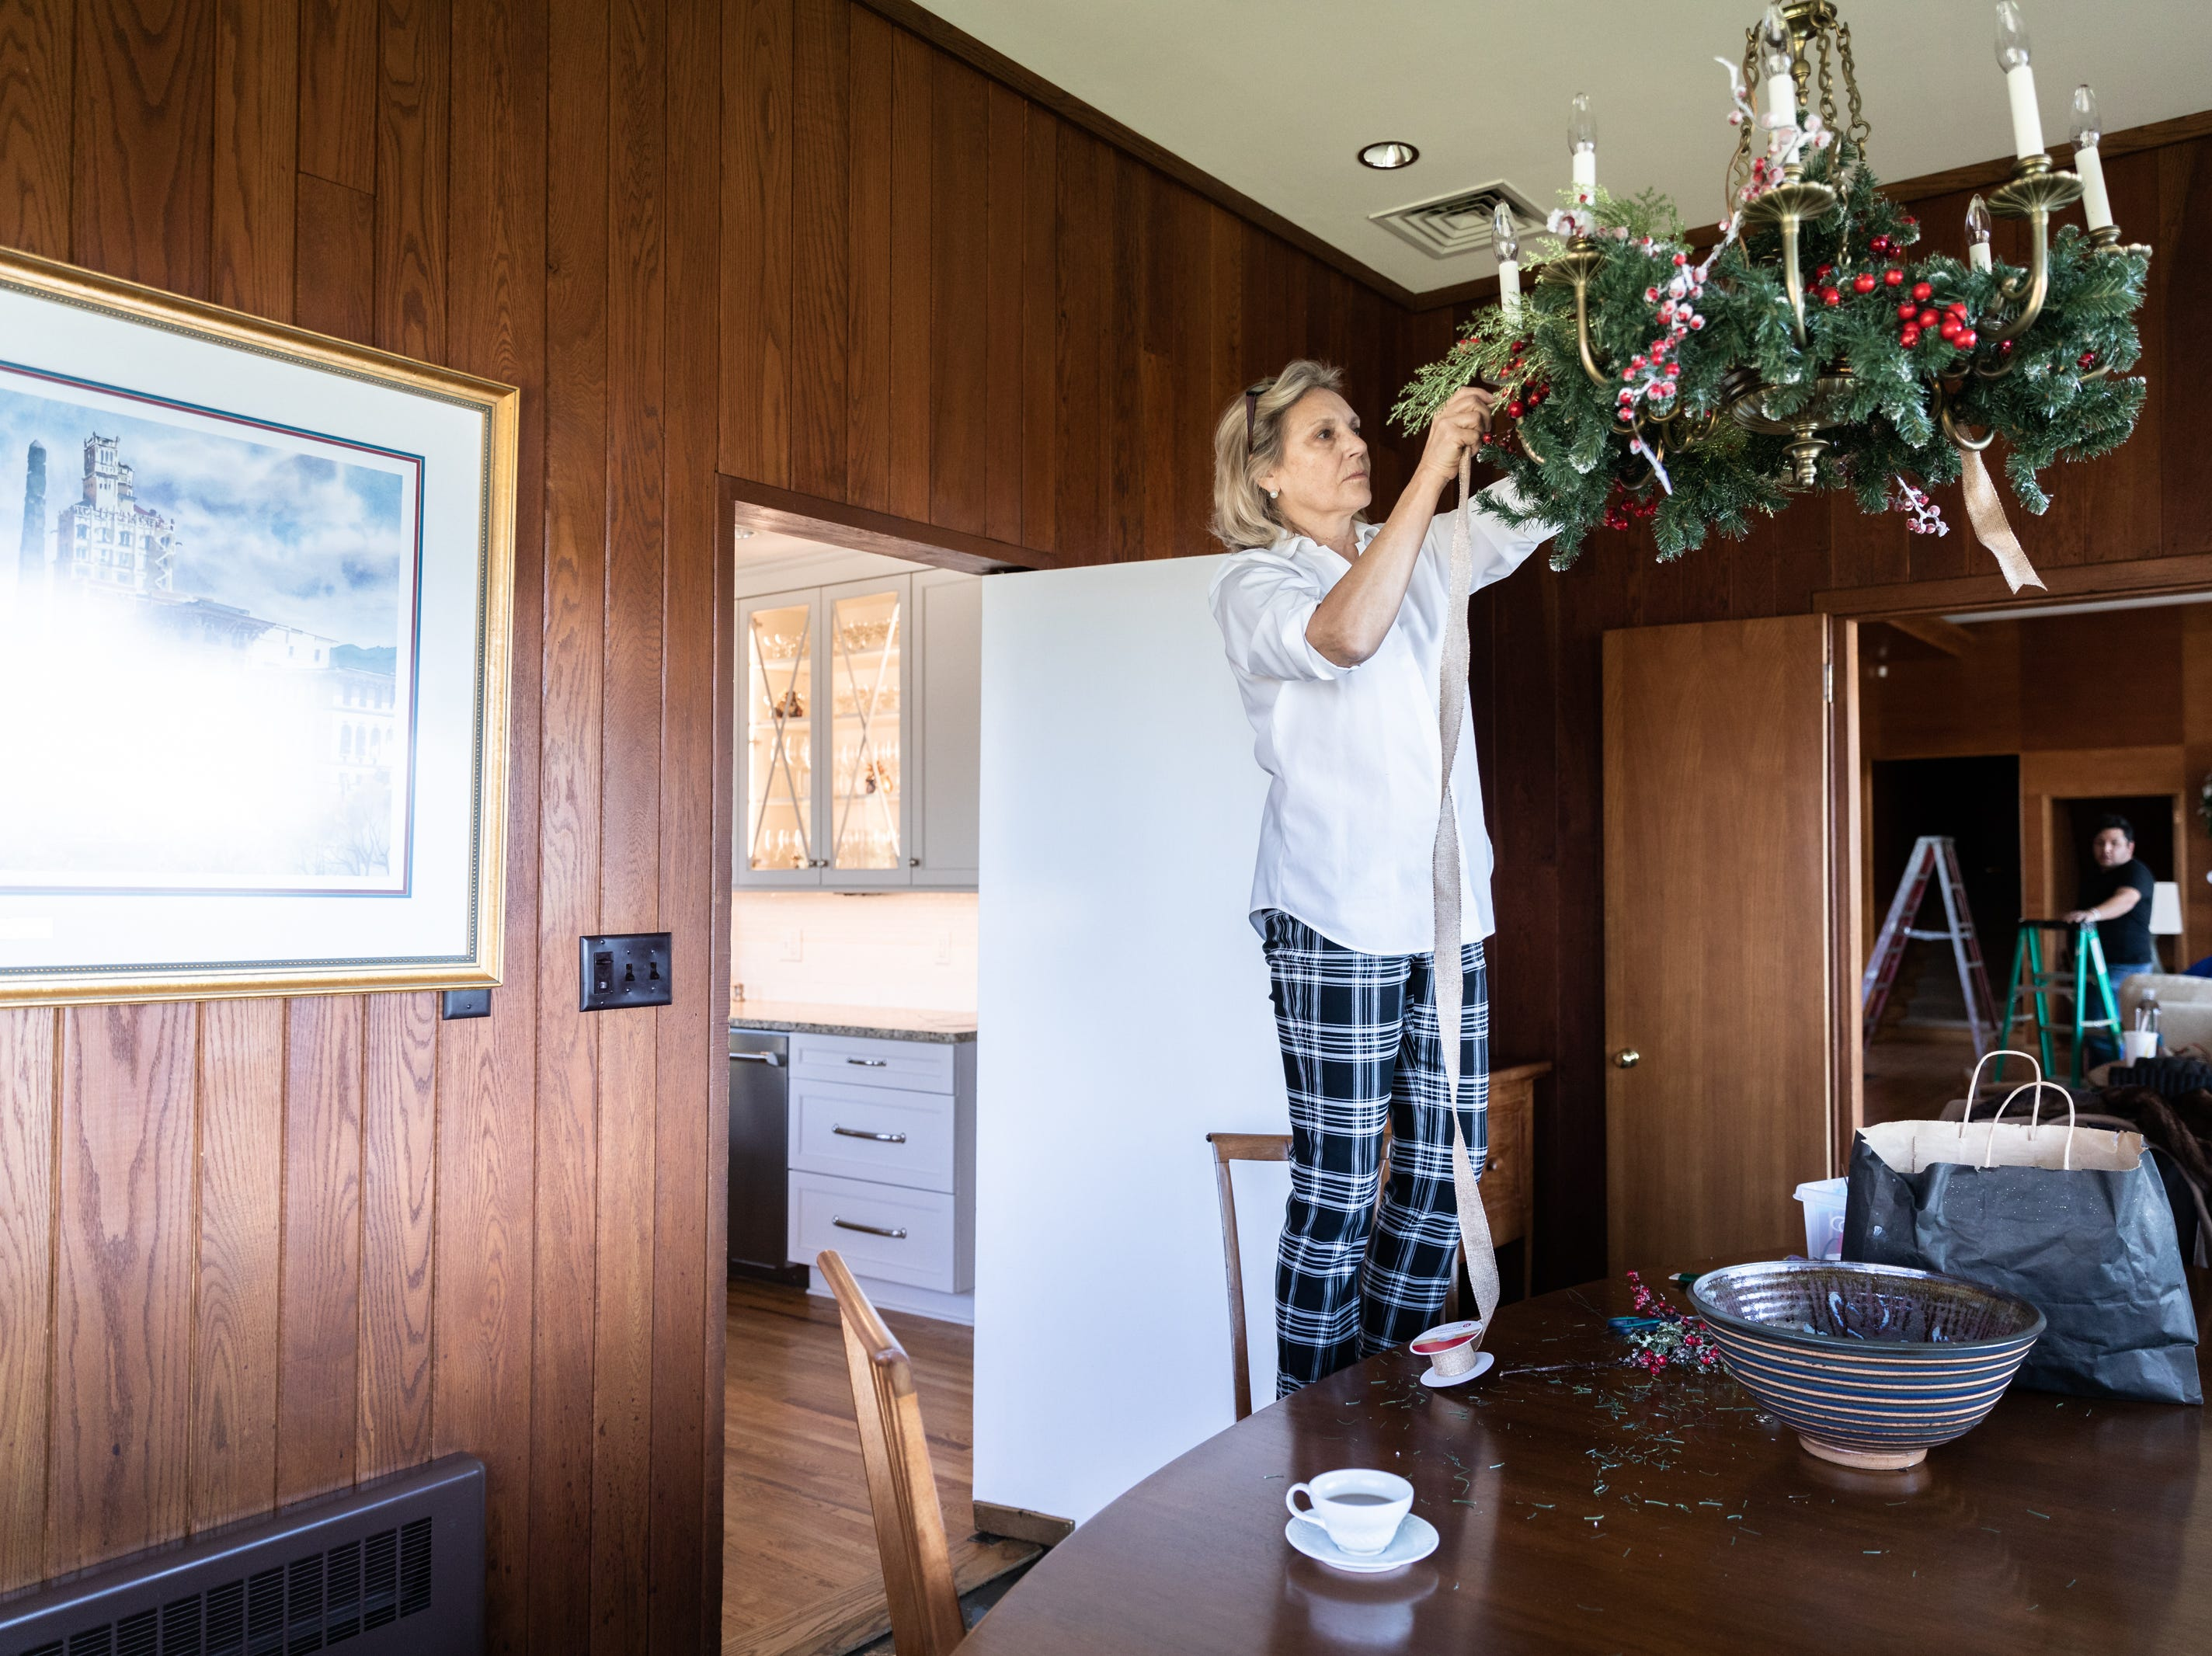 Kaye Myers, of Asheville, and a member of the Governor's Western Residence Board of Directors decorates the chandelier in the dining room in the residence on Patton Mountain Road in Asheville Nov. 29, 2018.